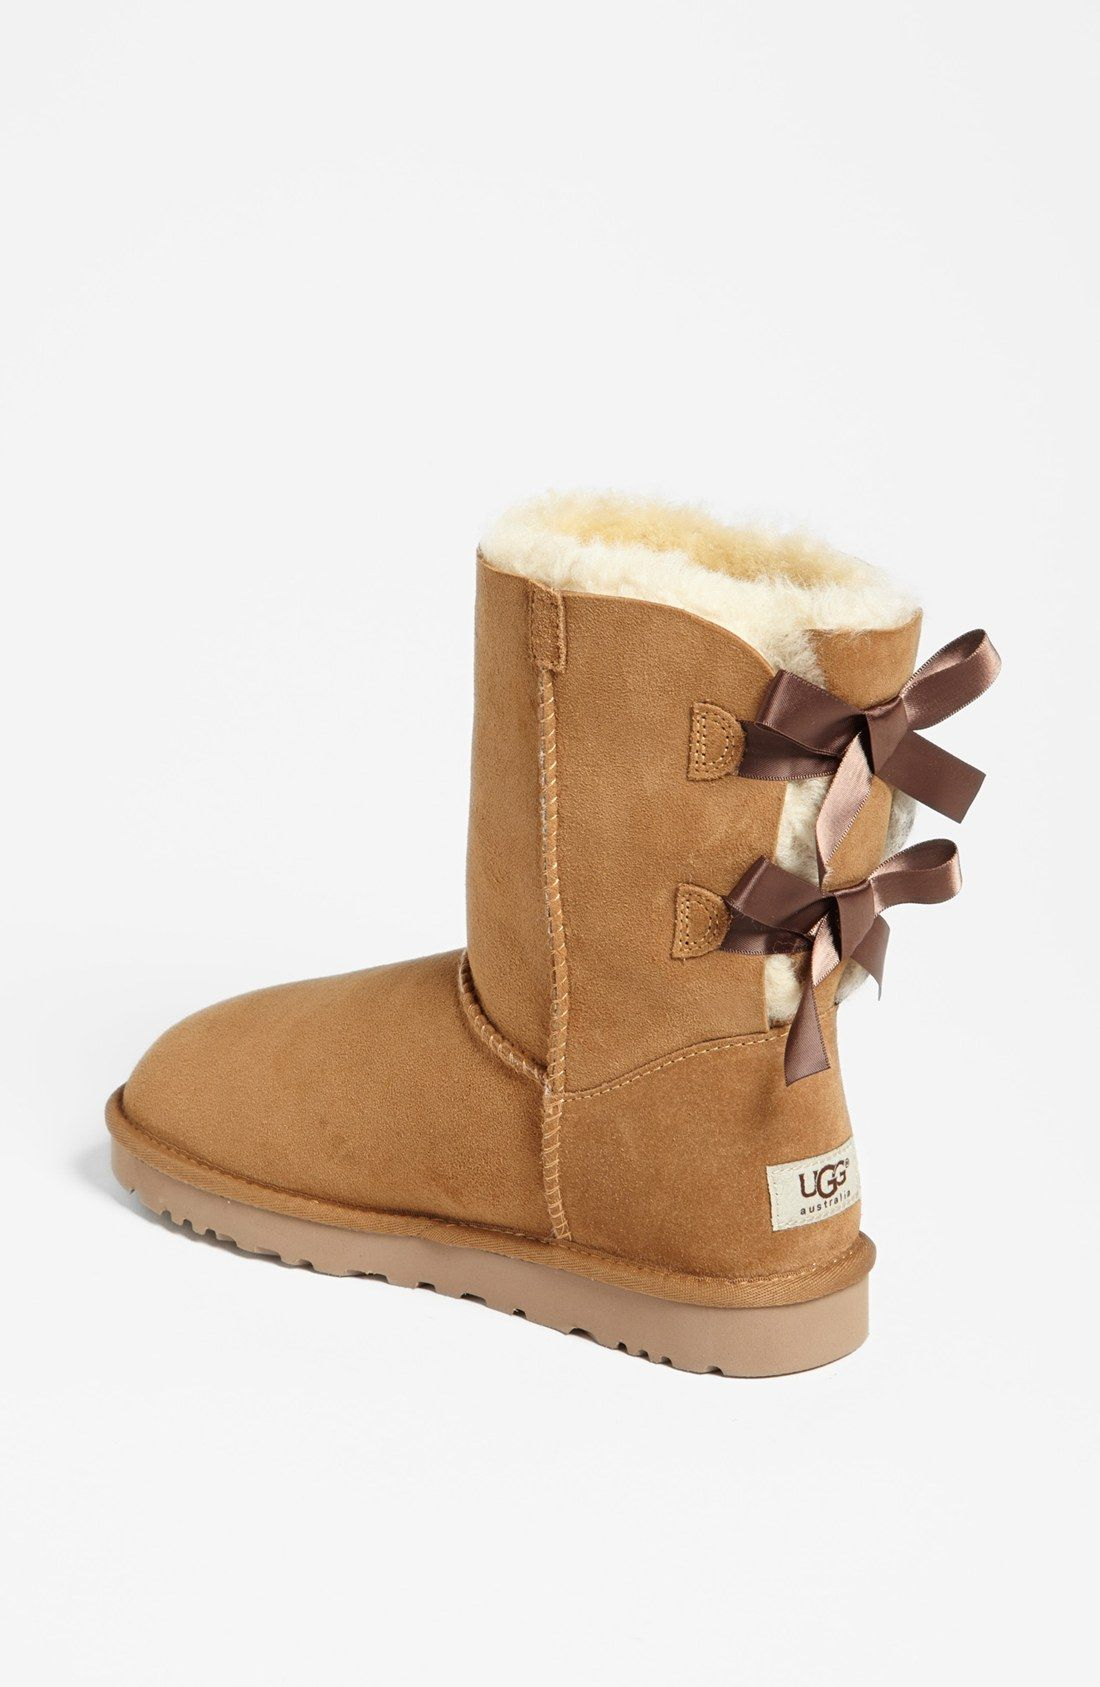 Repin And Get Snow Ugg Boots 39 For New Customers Now Buy It Immediatly Bow Boots Ugg Boots Ugg Boots Sale